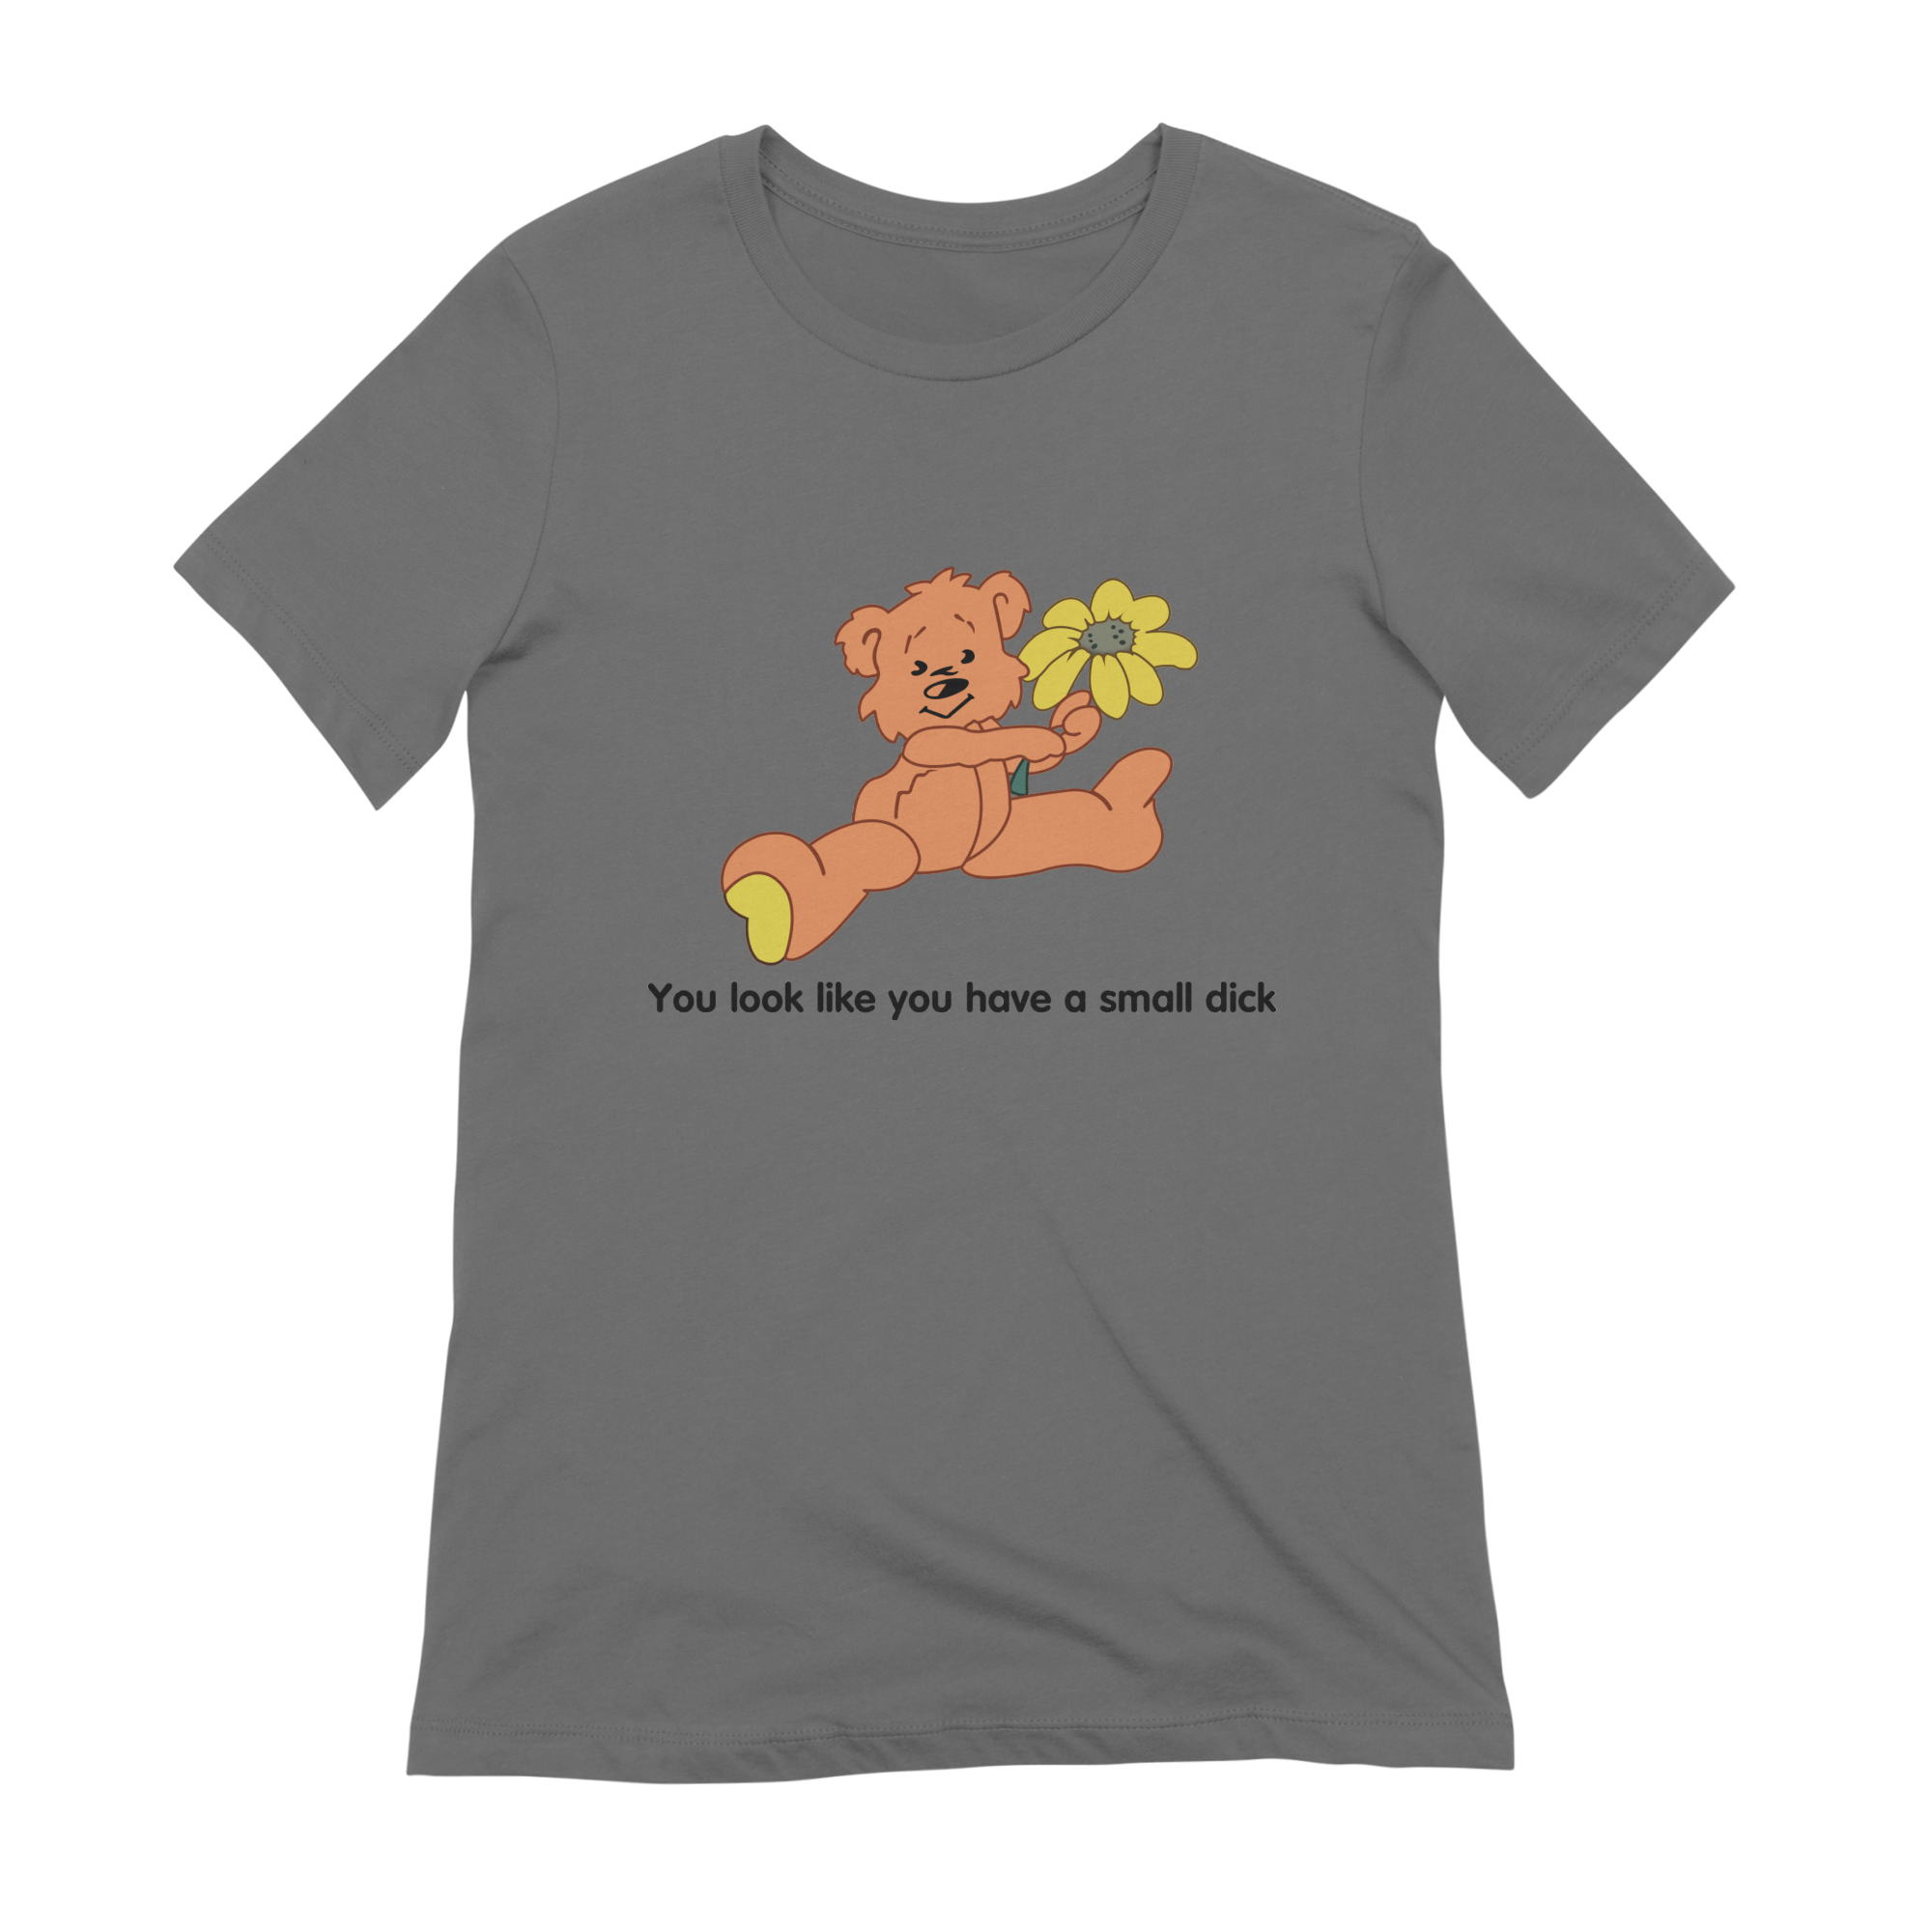 b1ec50579 9tees you-look-like-you-have-a-small-dick-funny-bear-shirt womens